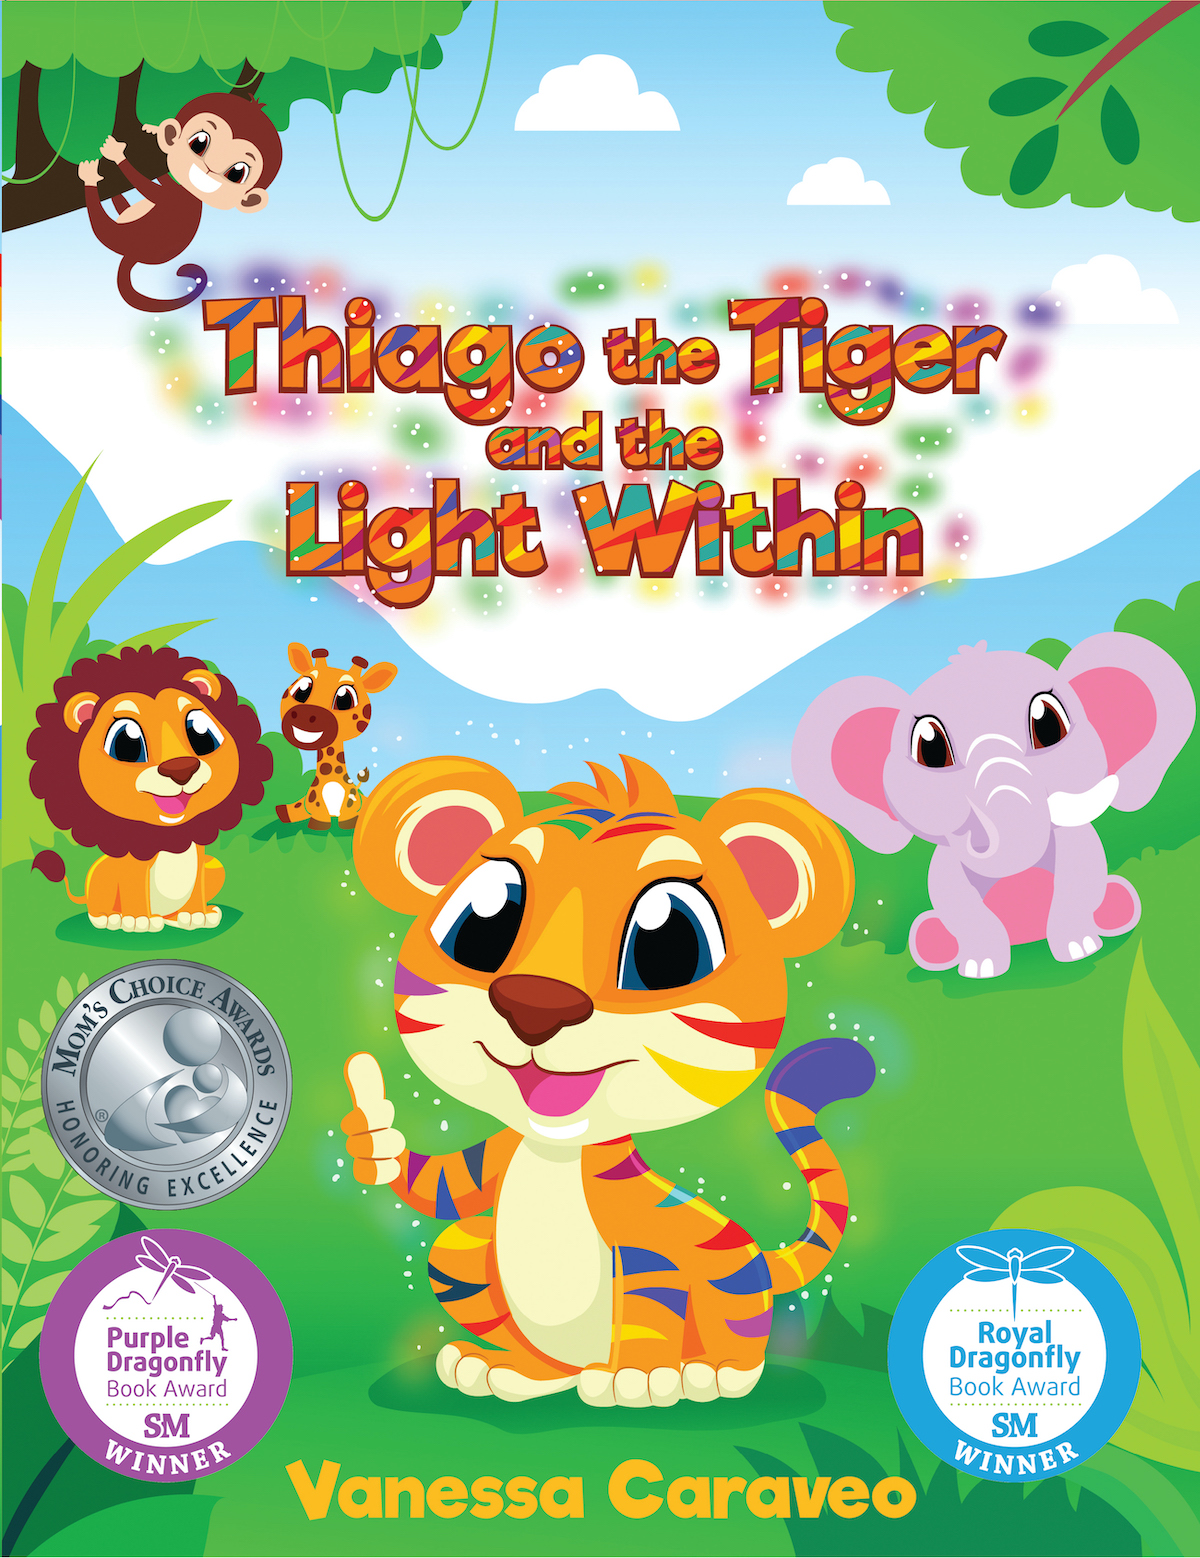 Award-Winning Children's book — Thiago the Tiger and the Light Within